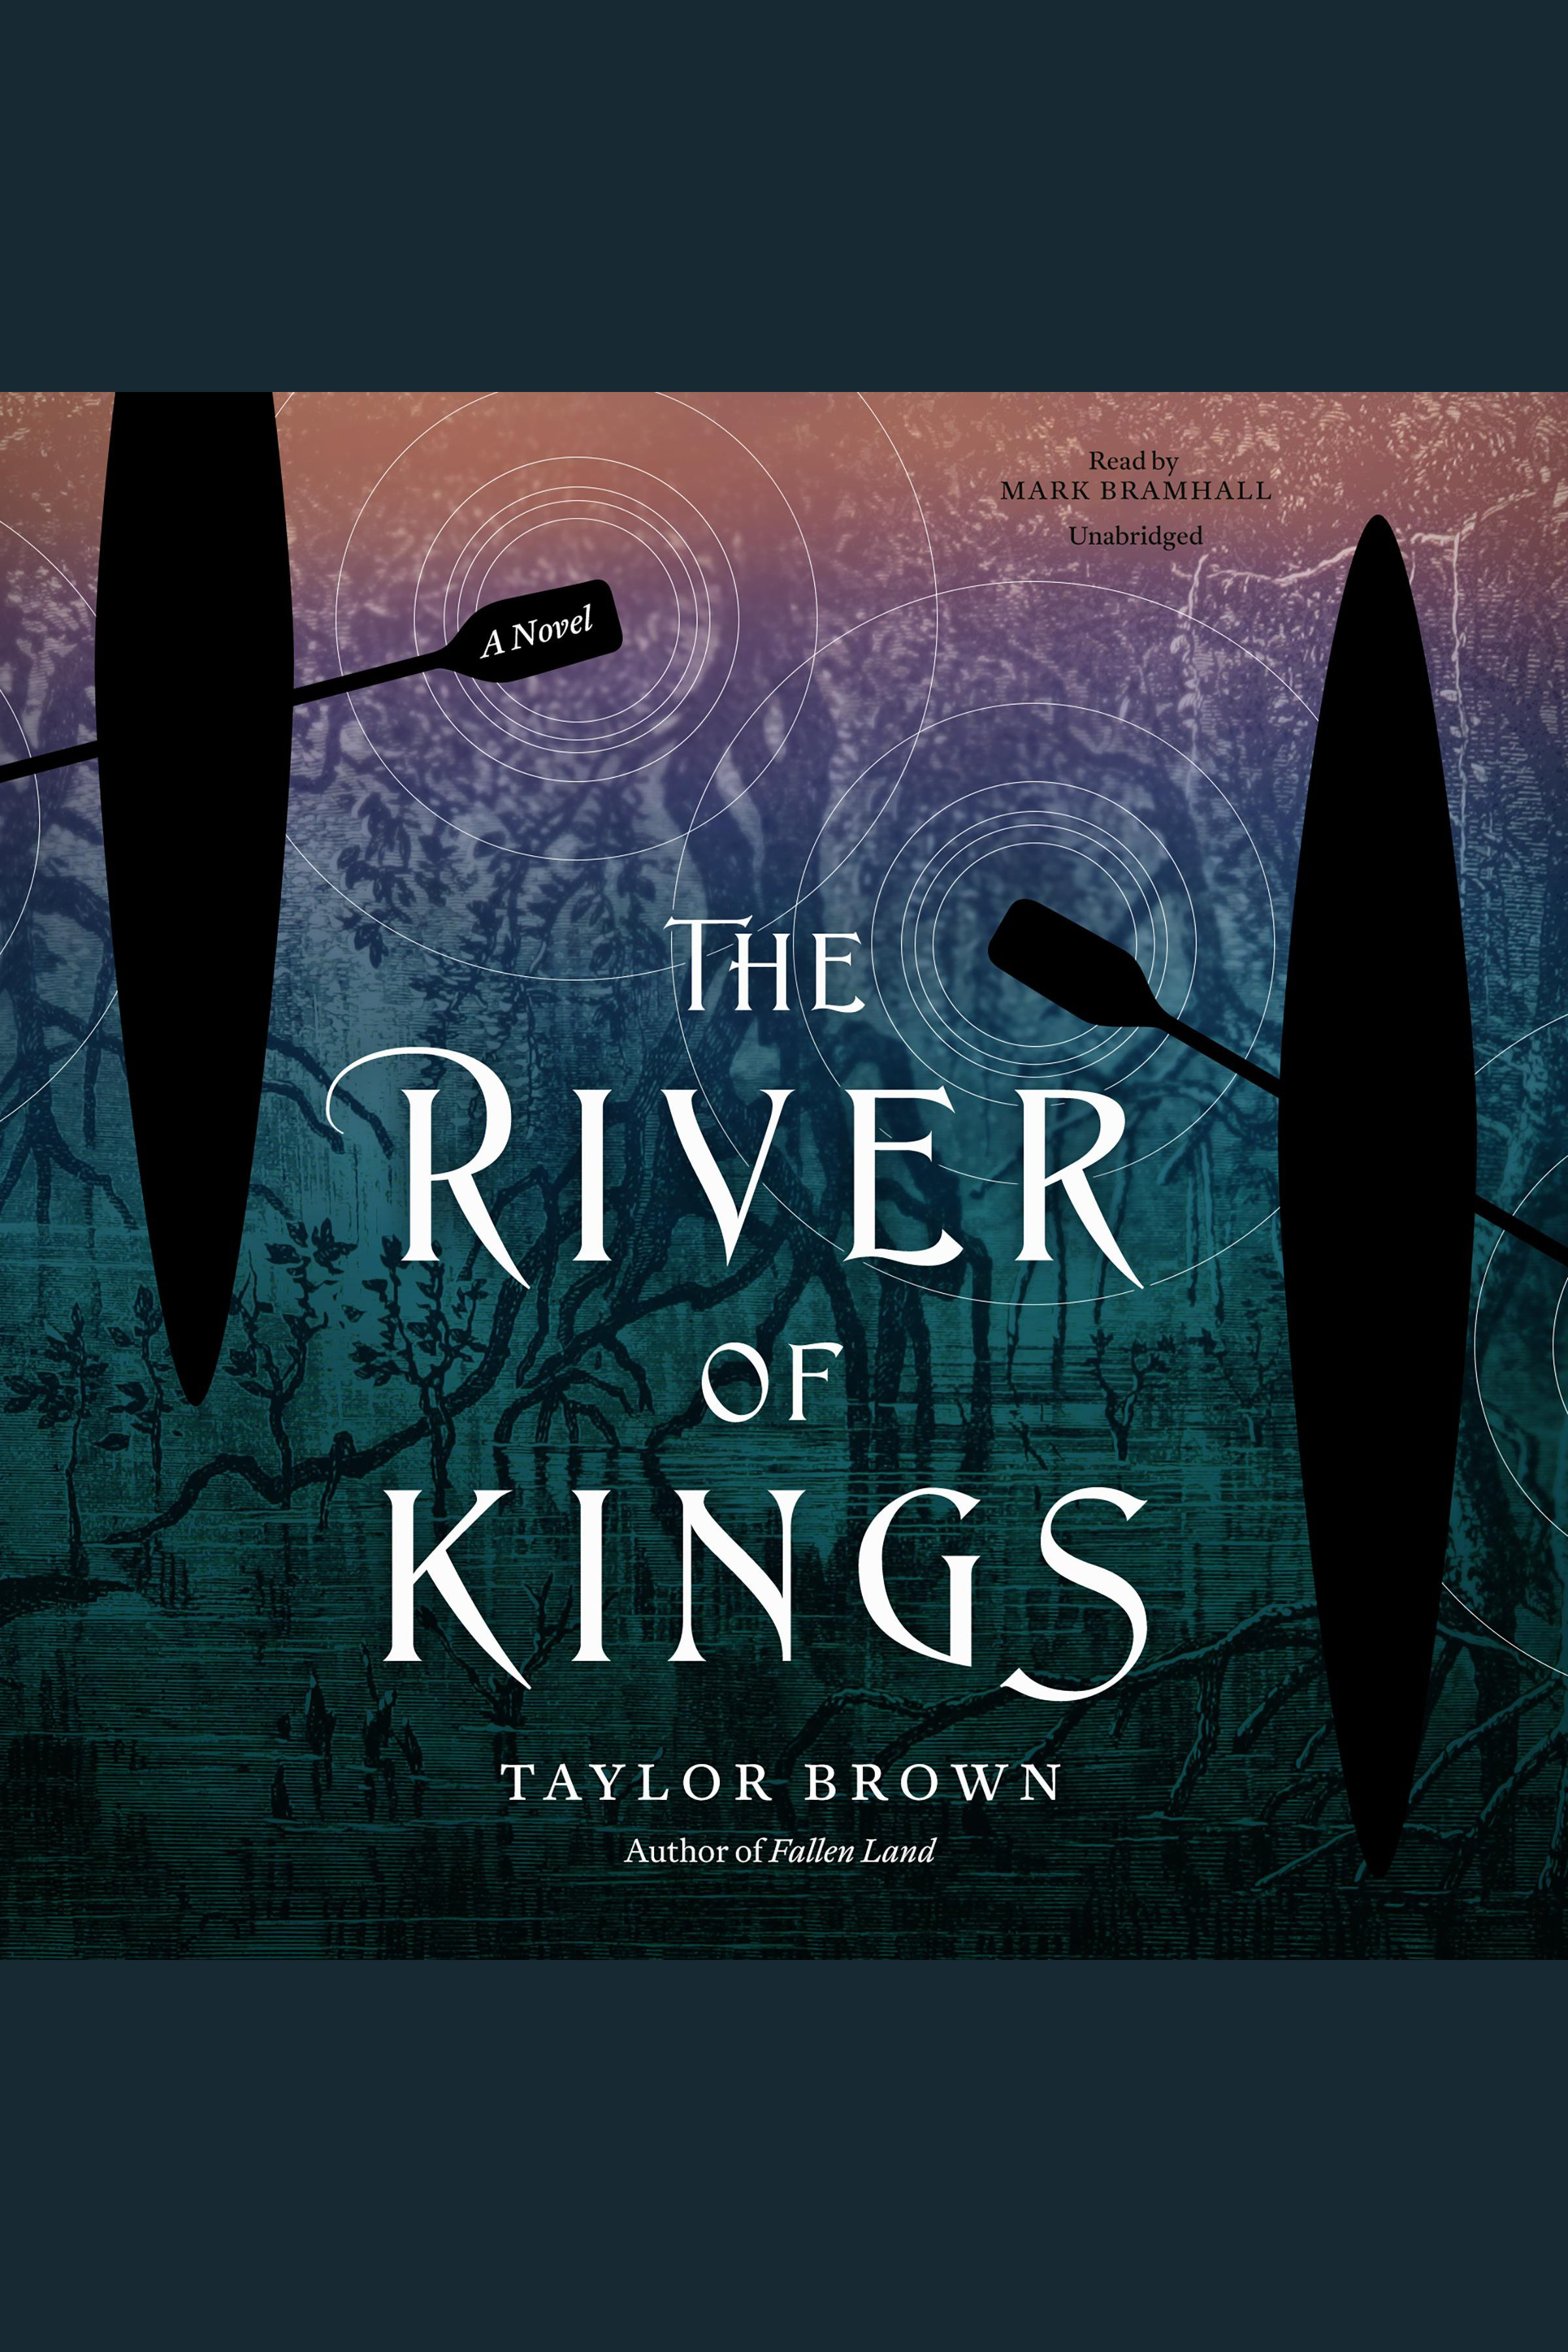 The river of kings cover image